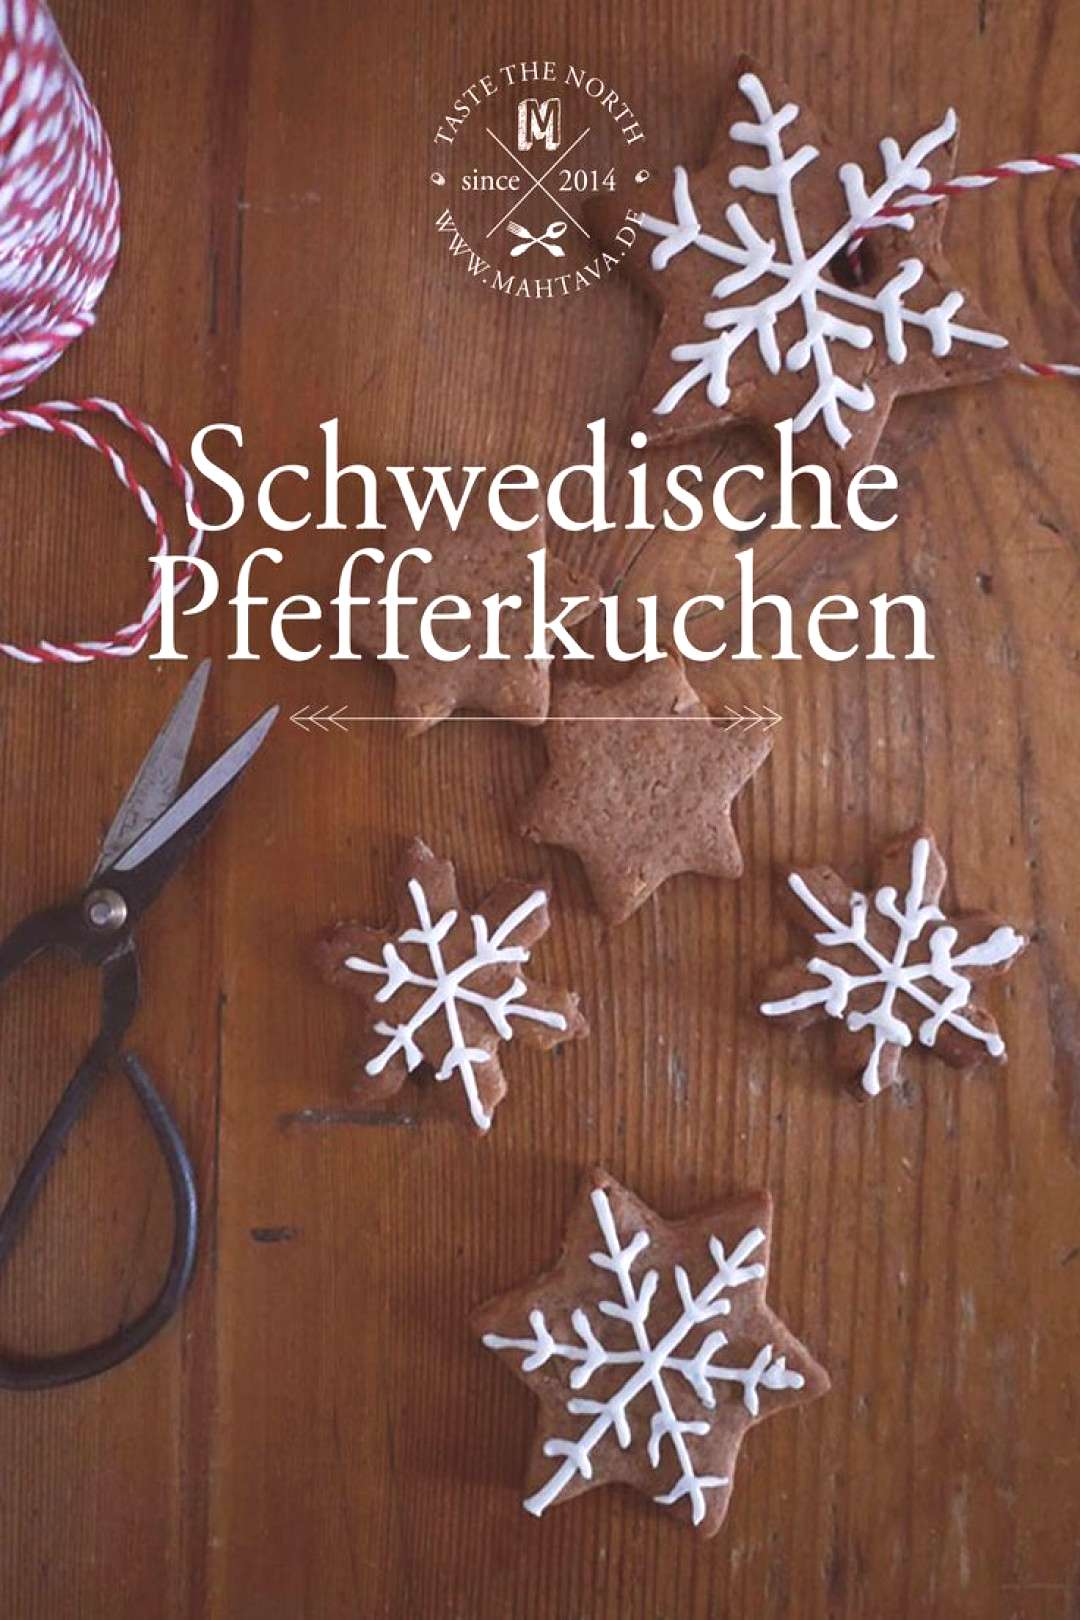 Gingerbread with almonds (Pepparkakor med almond) • MAHTAVA! - -